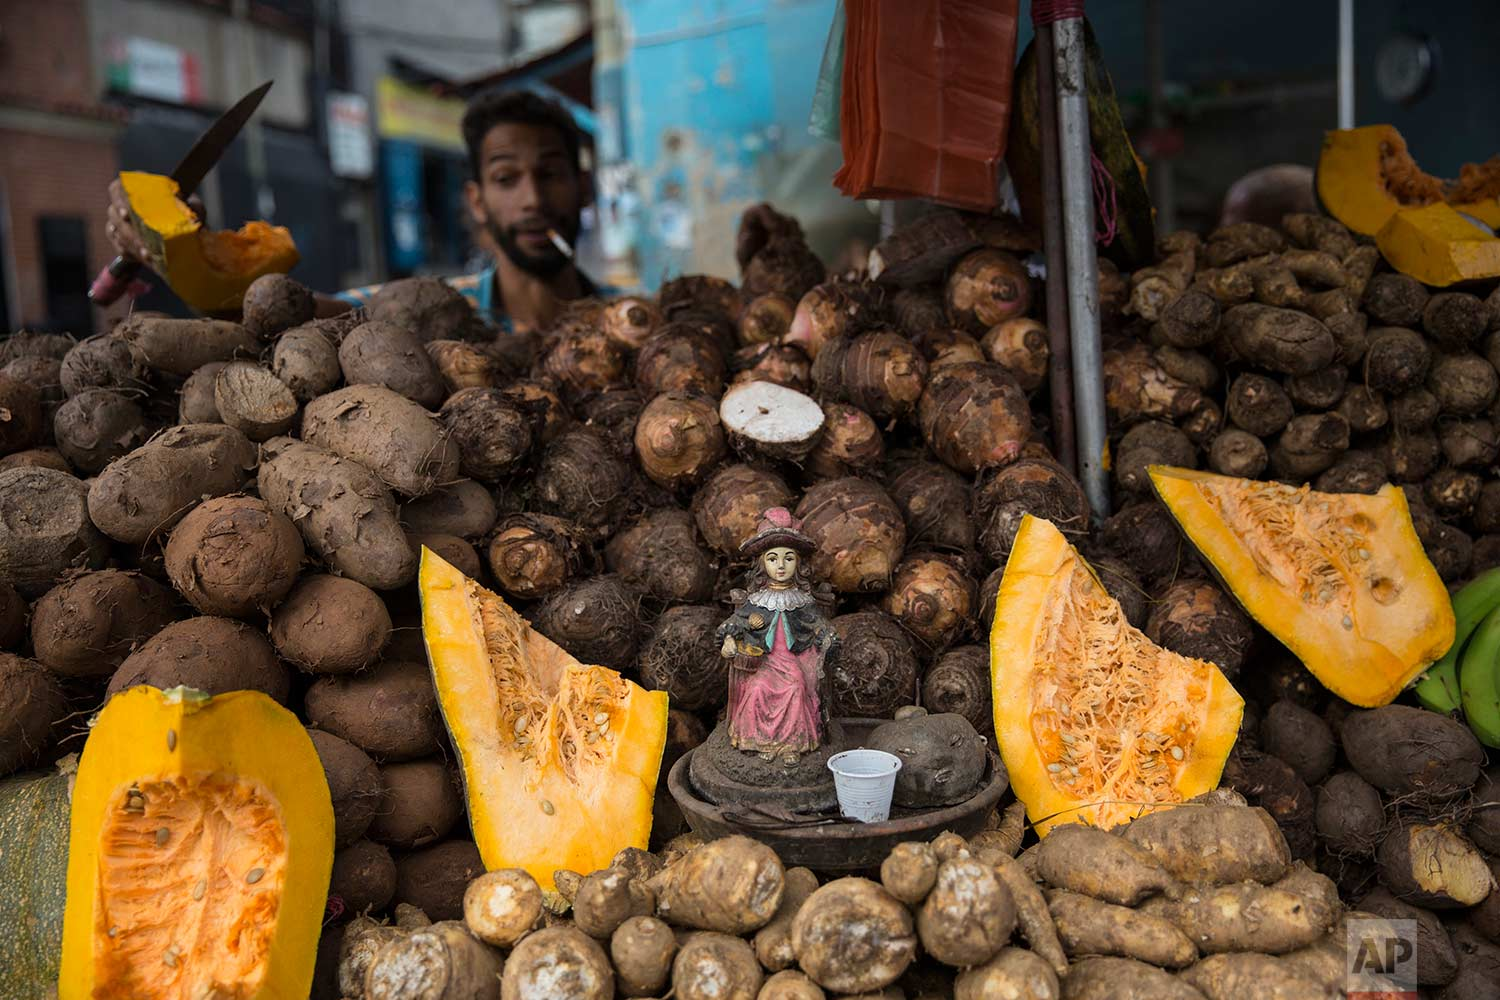 """A figurine of the """"Nino de Atoche"""" is displayed in a stand at a street market in Caracas, Venezuela, Friday, Oct. 27, 2017. (AP Photo/Rodrigo Abd)"""